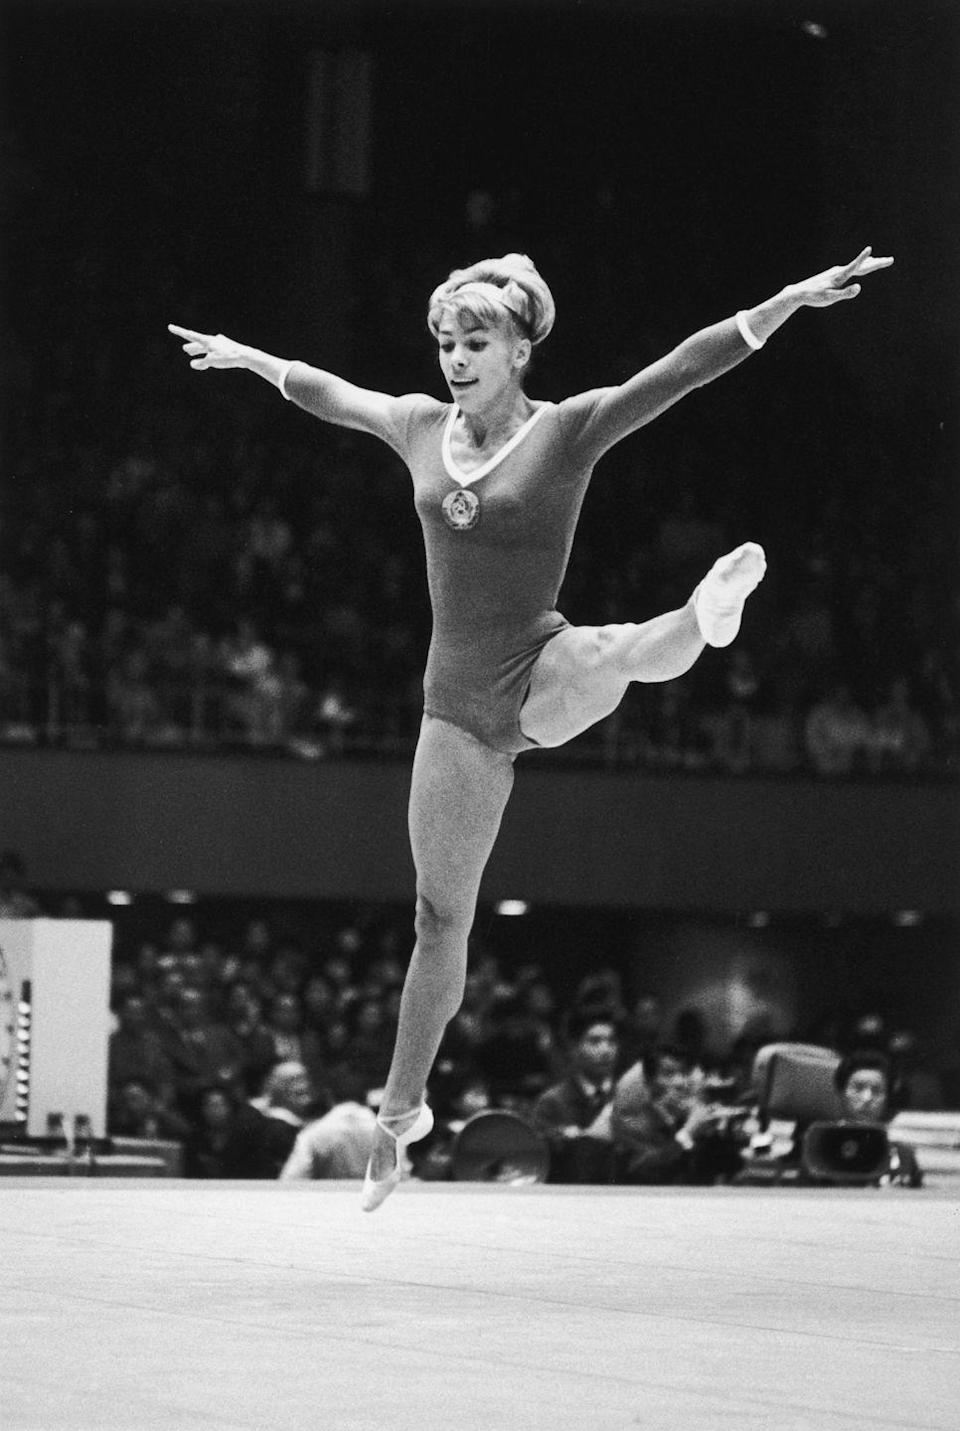 <p>Soviet Union-born Larisa Latynina was considered the queen of gymnastics in the '60s, in part for the 18 Olympic medals she won throughout her career, six of which were won at the Tokyo games in 1964. She held the record for most Olympics medals won (male or female), until 2012 when she was surpassed by Michael Phelps. </p>